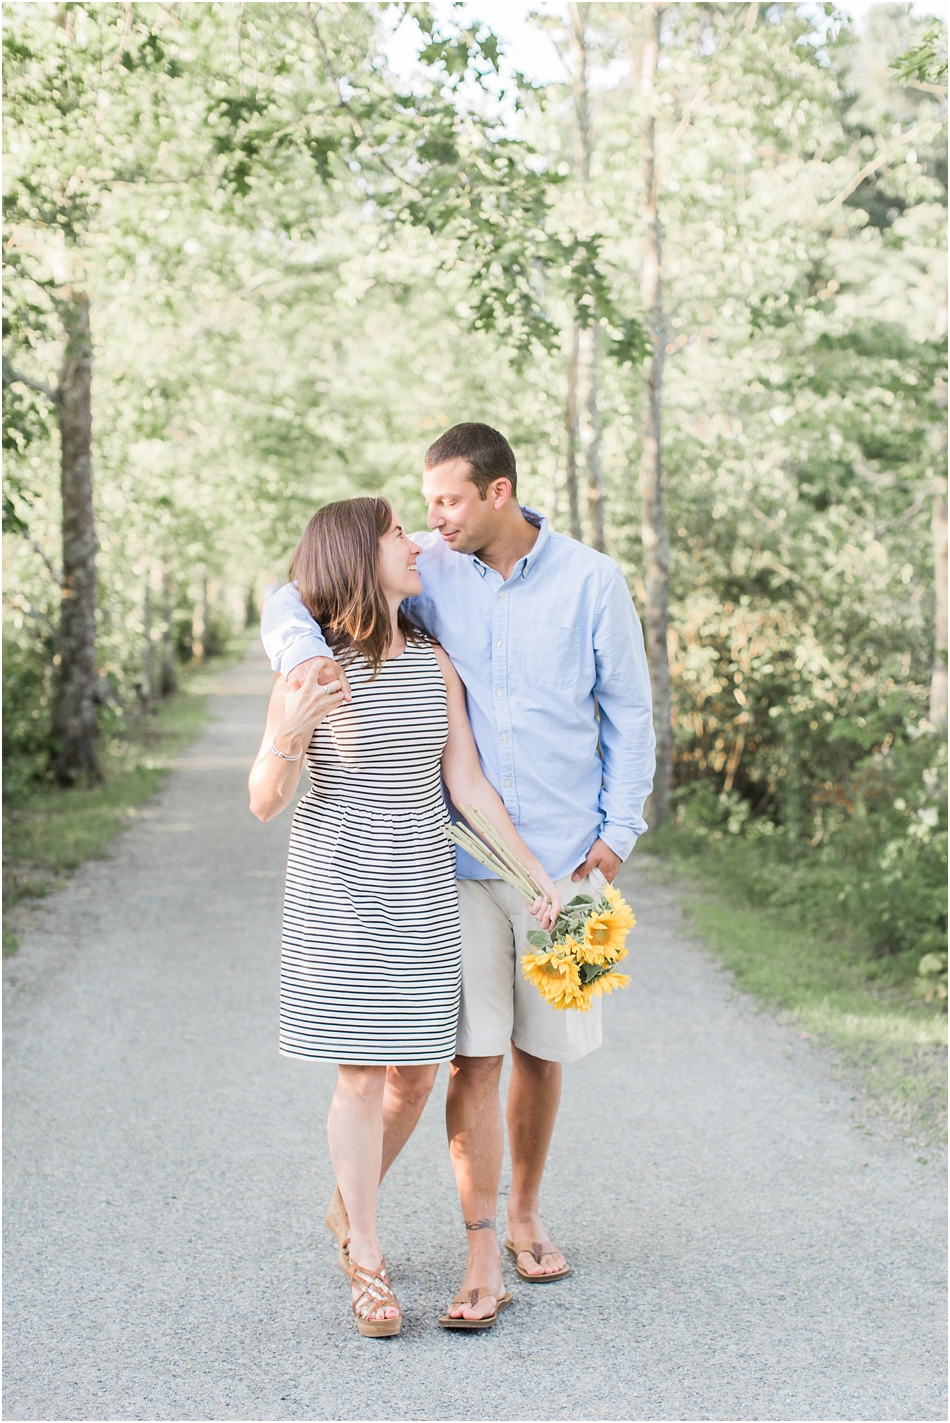 danvers_rail_trail_engagement_boston_massachusetts_cape_cod_new_england_wedding_photographer_Meredith_Jane_Photography_photo_1937.jpg